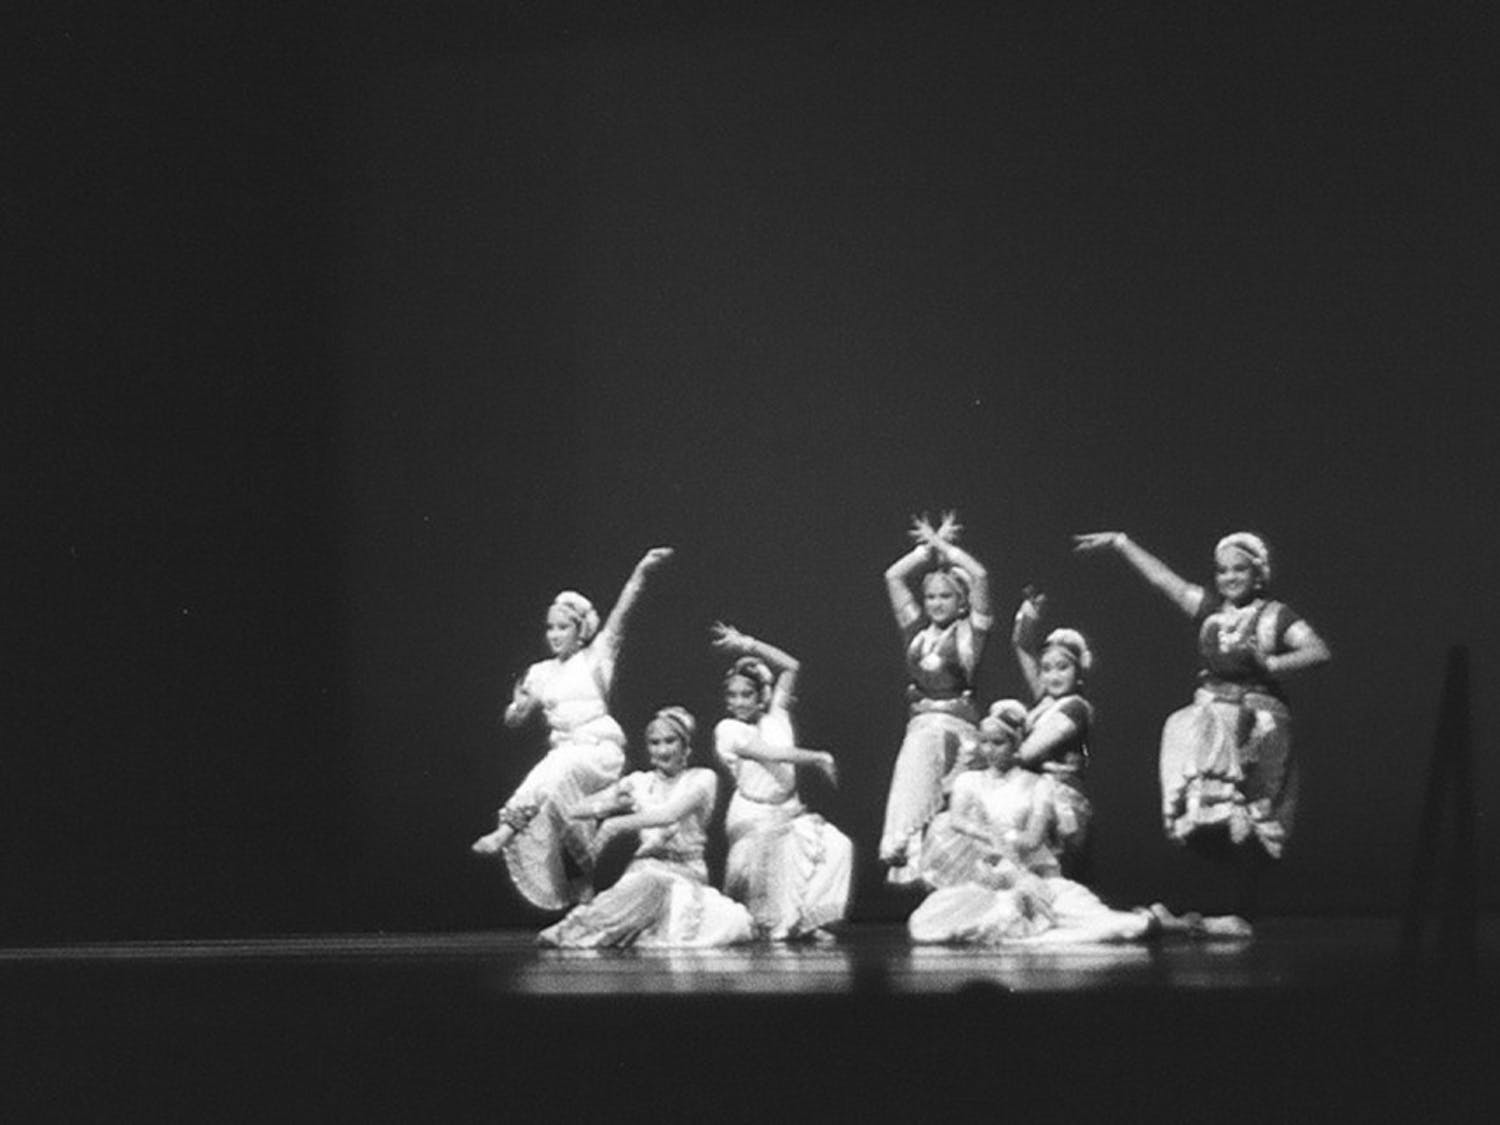 Ek Taal, a Bharthanatyum dance group,performs at Journey into Asia last spring.